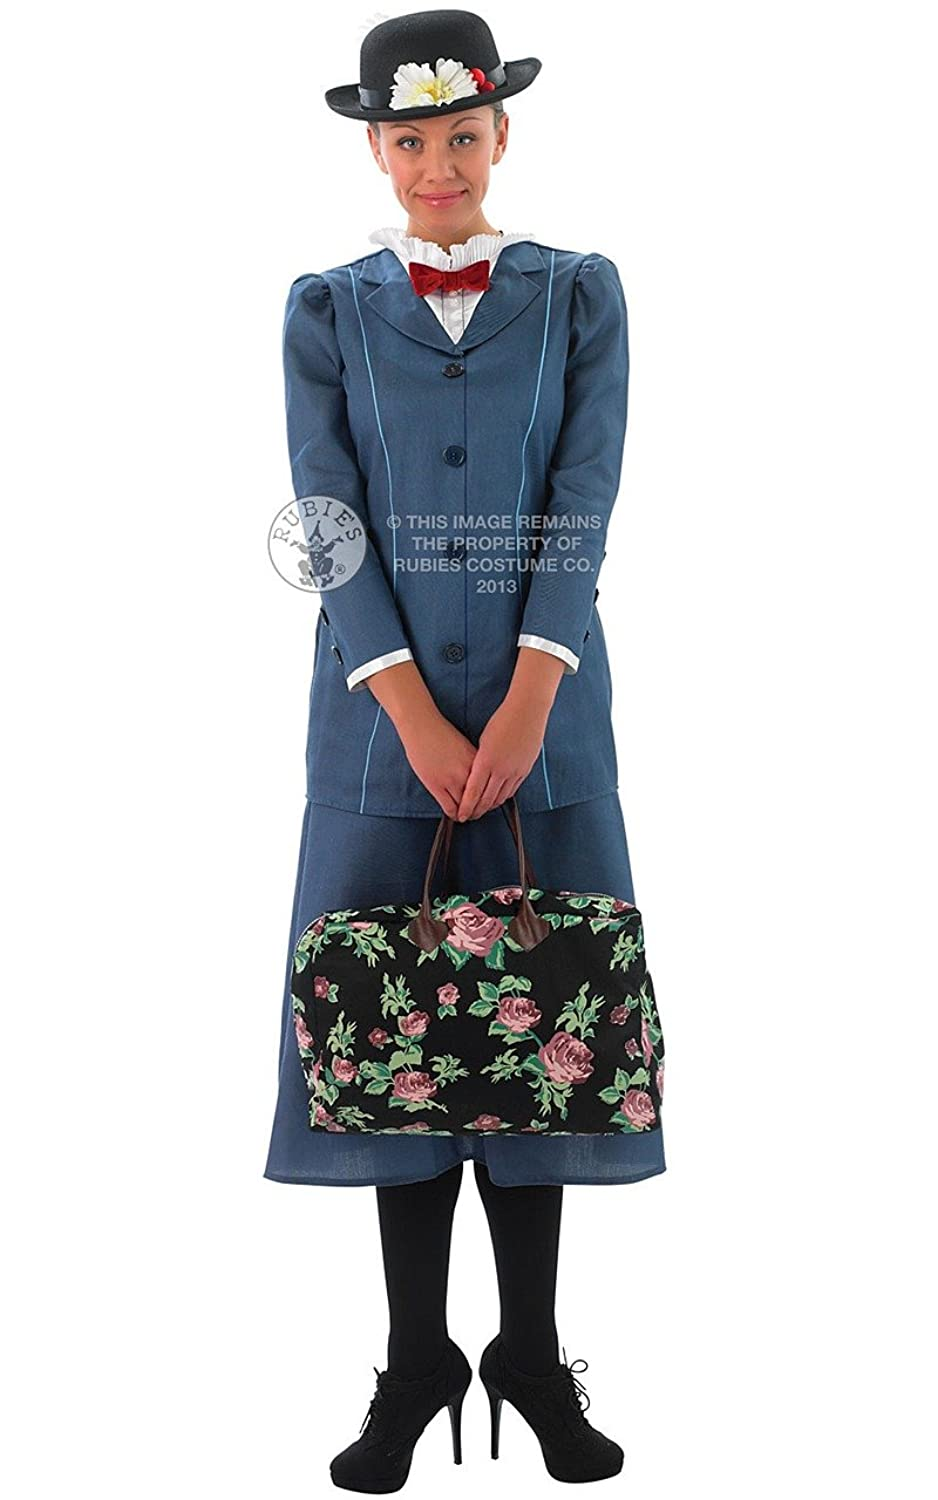 1900s, 1910s, WW1, Titanic Costumes Disney Mary Poppins Full Costume- Adult Medium (12-14) $139.20 AT vintagedancer.com